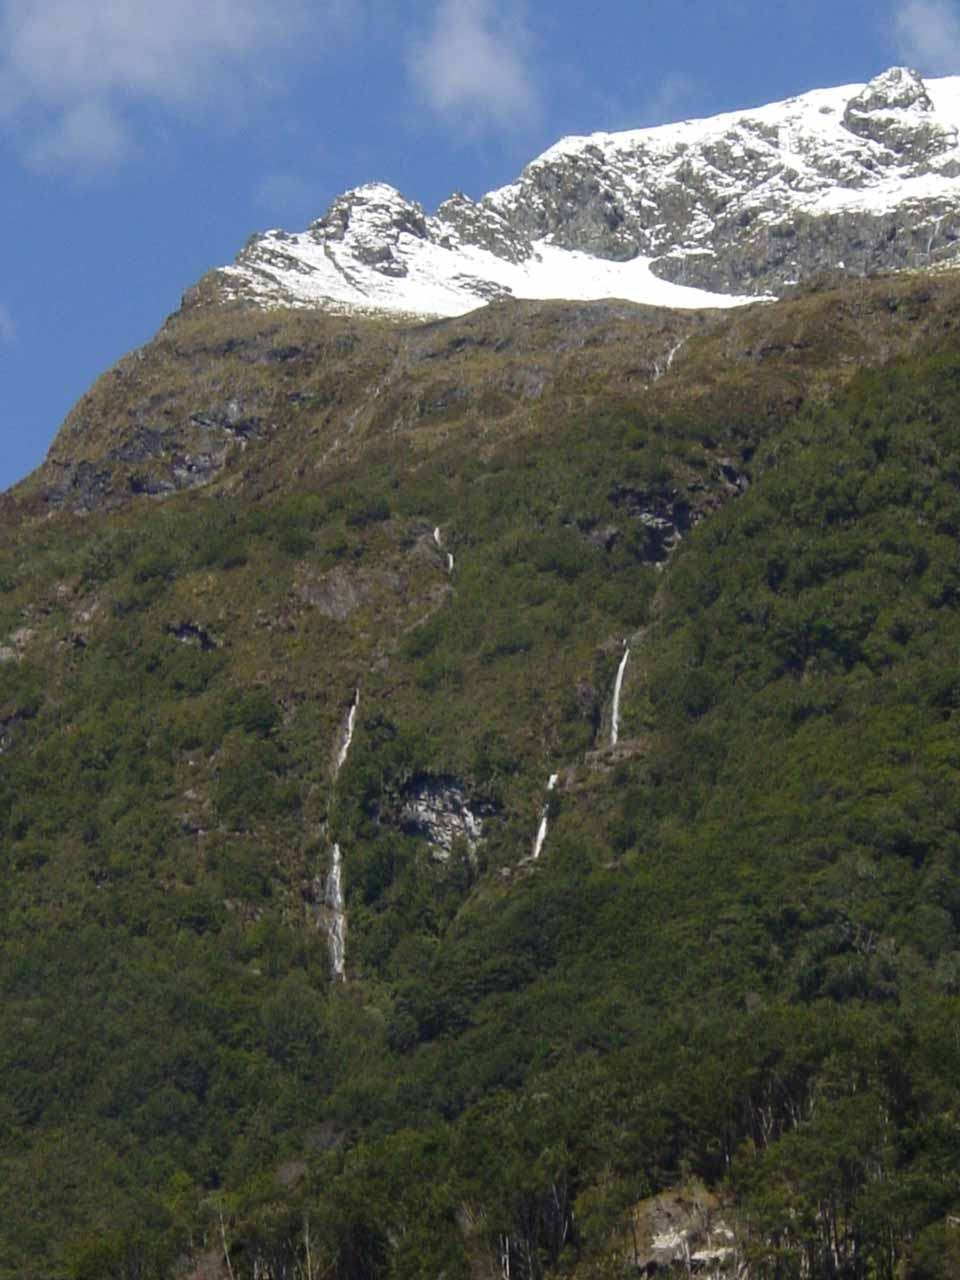 Looking towards a pair of thin waterfalls shortly before landing at the start of the Milford Track at the head of Lake Te Anau